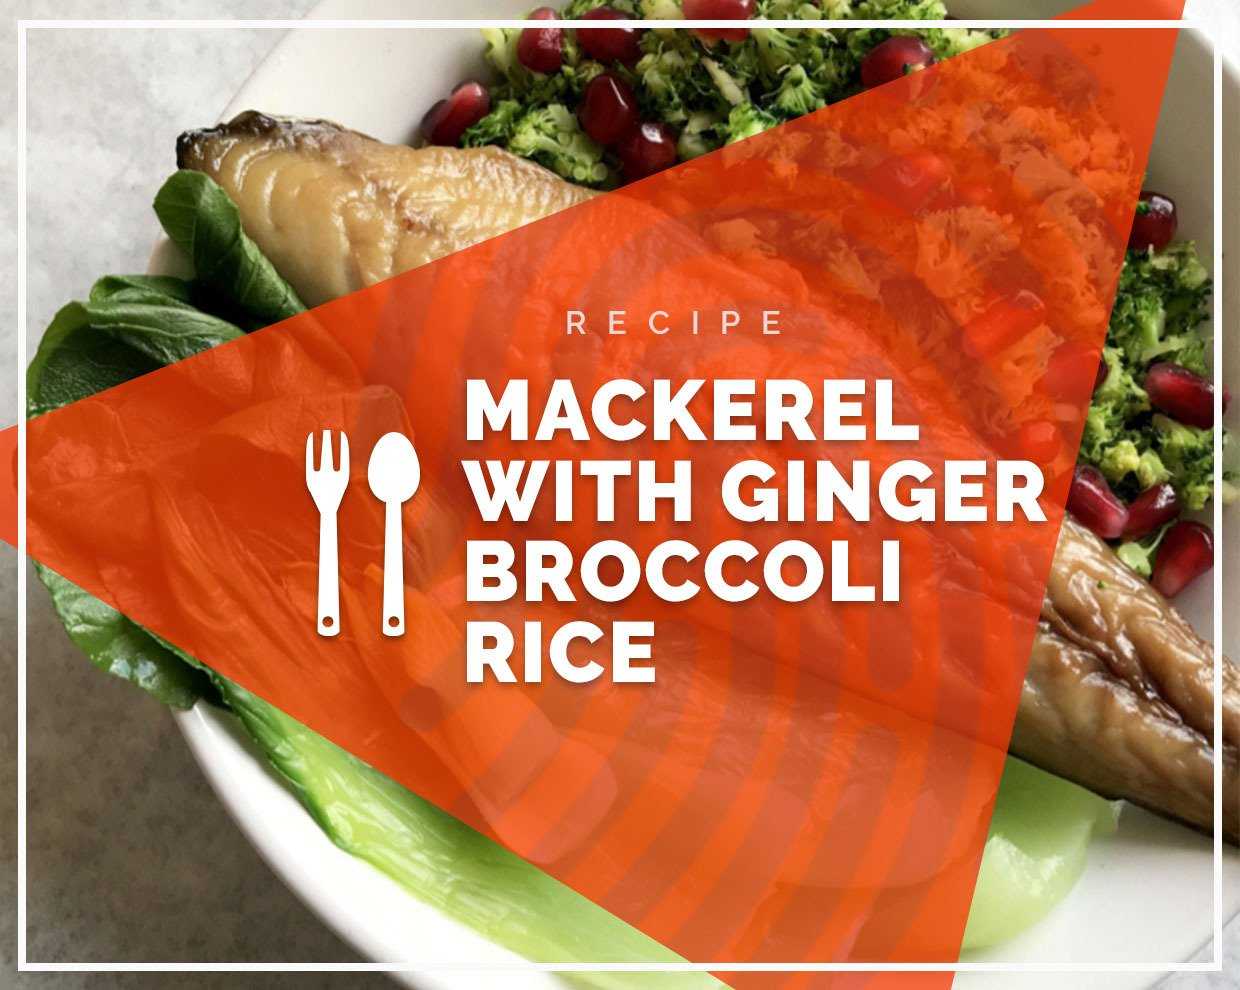 Mackerel with ginger broccoli rice